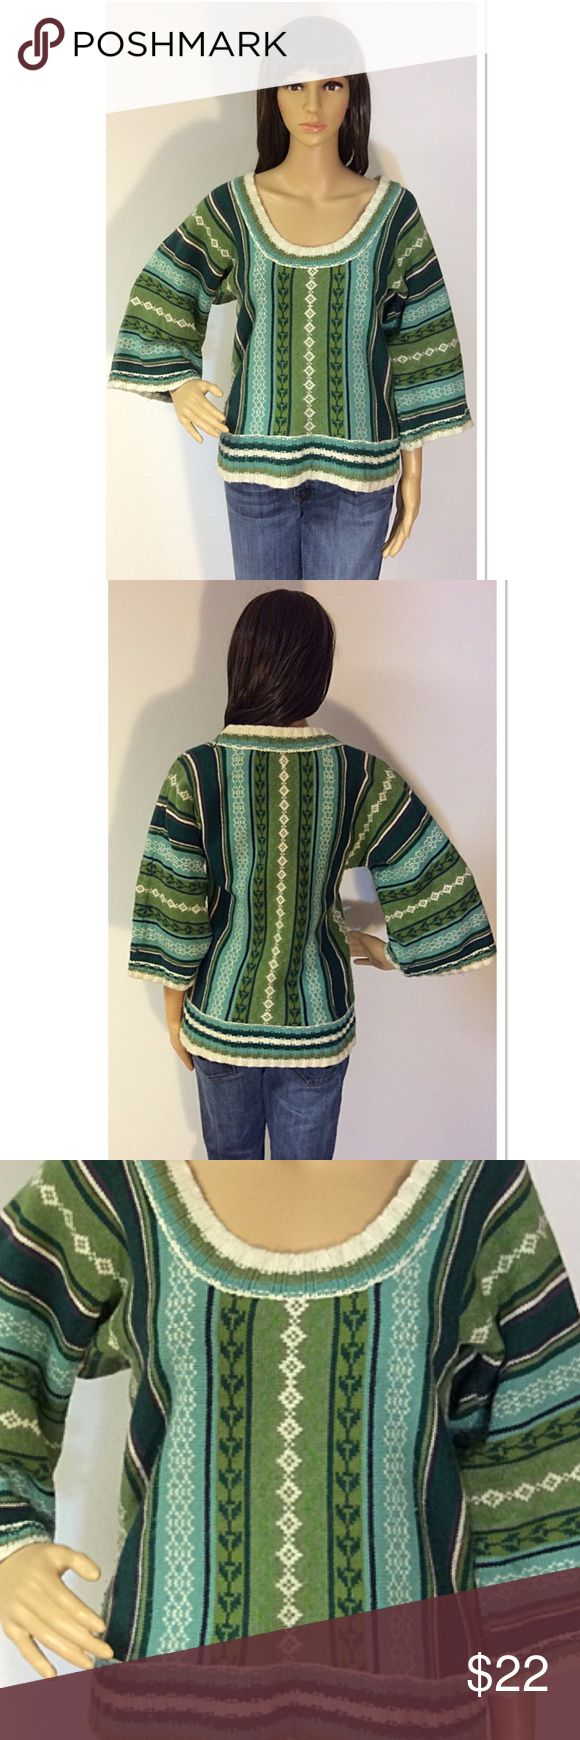 OLD NAVY SWEATER Beautiful colors and wide sleeves. This sweater is perfect to pair with a turtleneck for winter. Gently used Old Navy Sweaters Crew & Scoop Necks